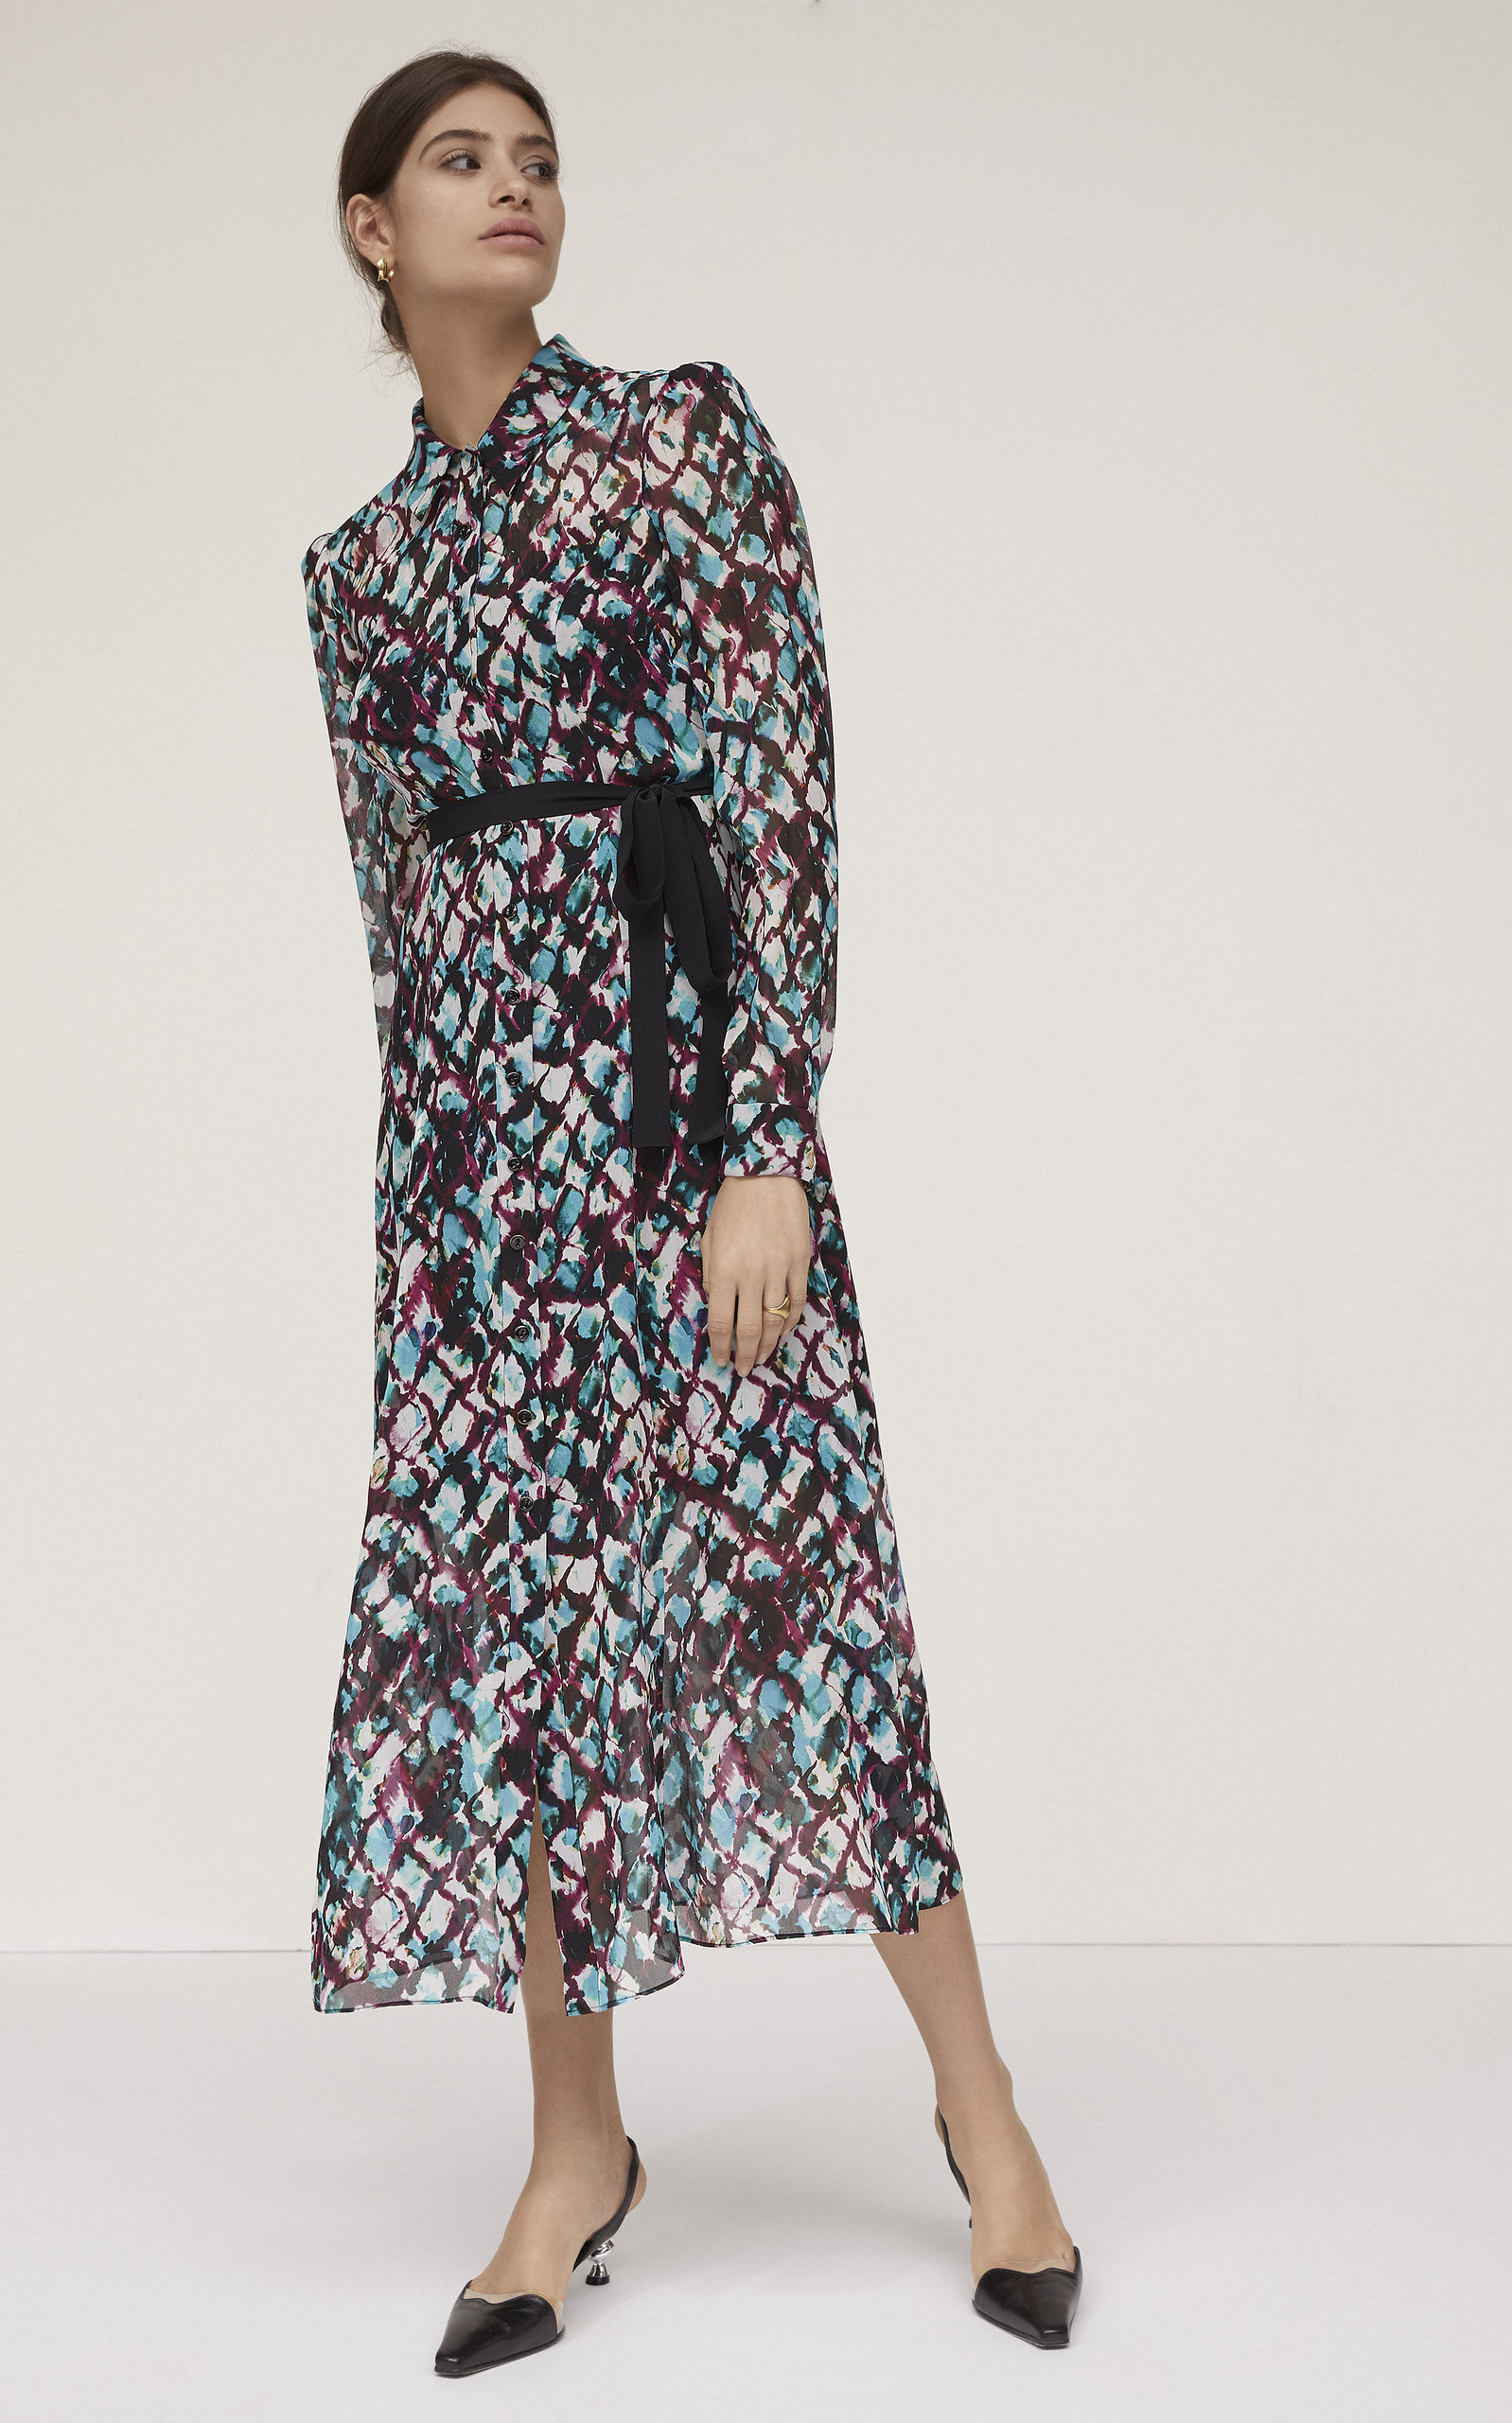 d229cdeb53a saloni-vanessa-belted-printed-silk-dress-moda-operandi-photo.jpg?1551369306